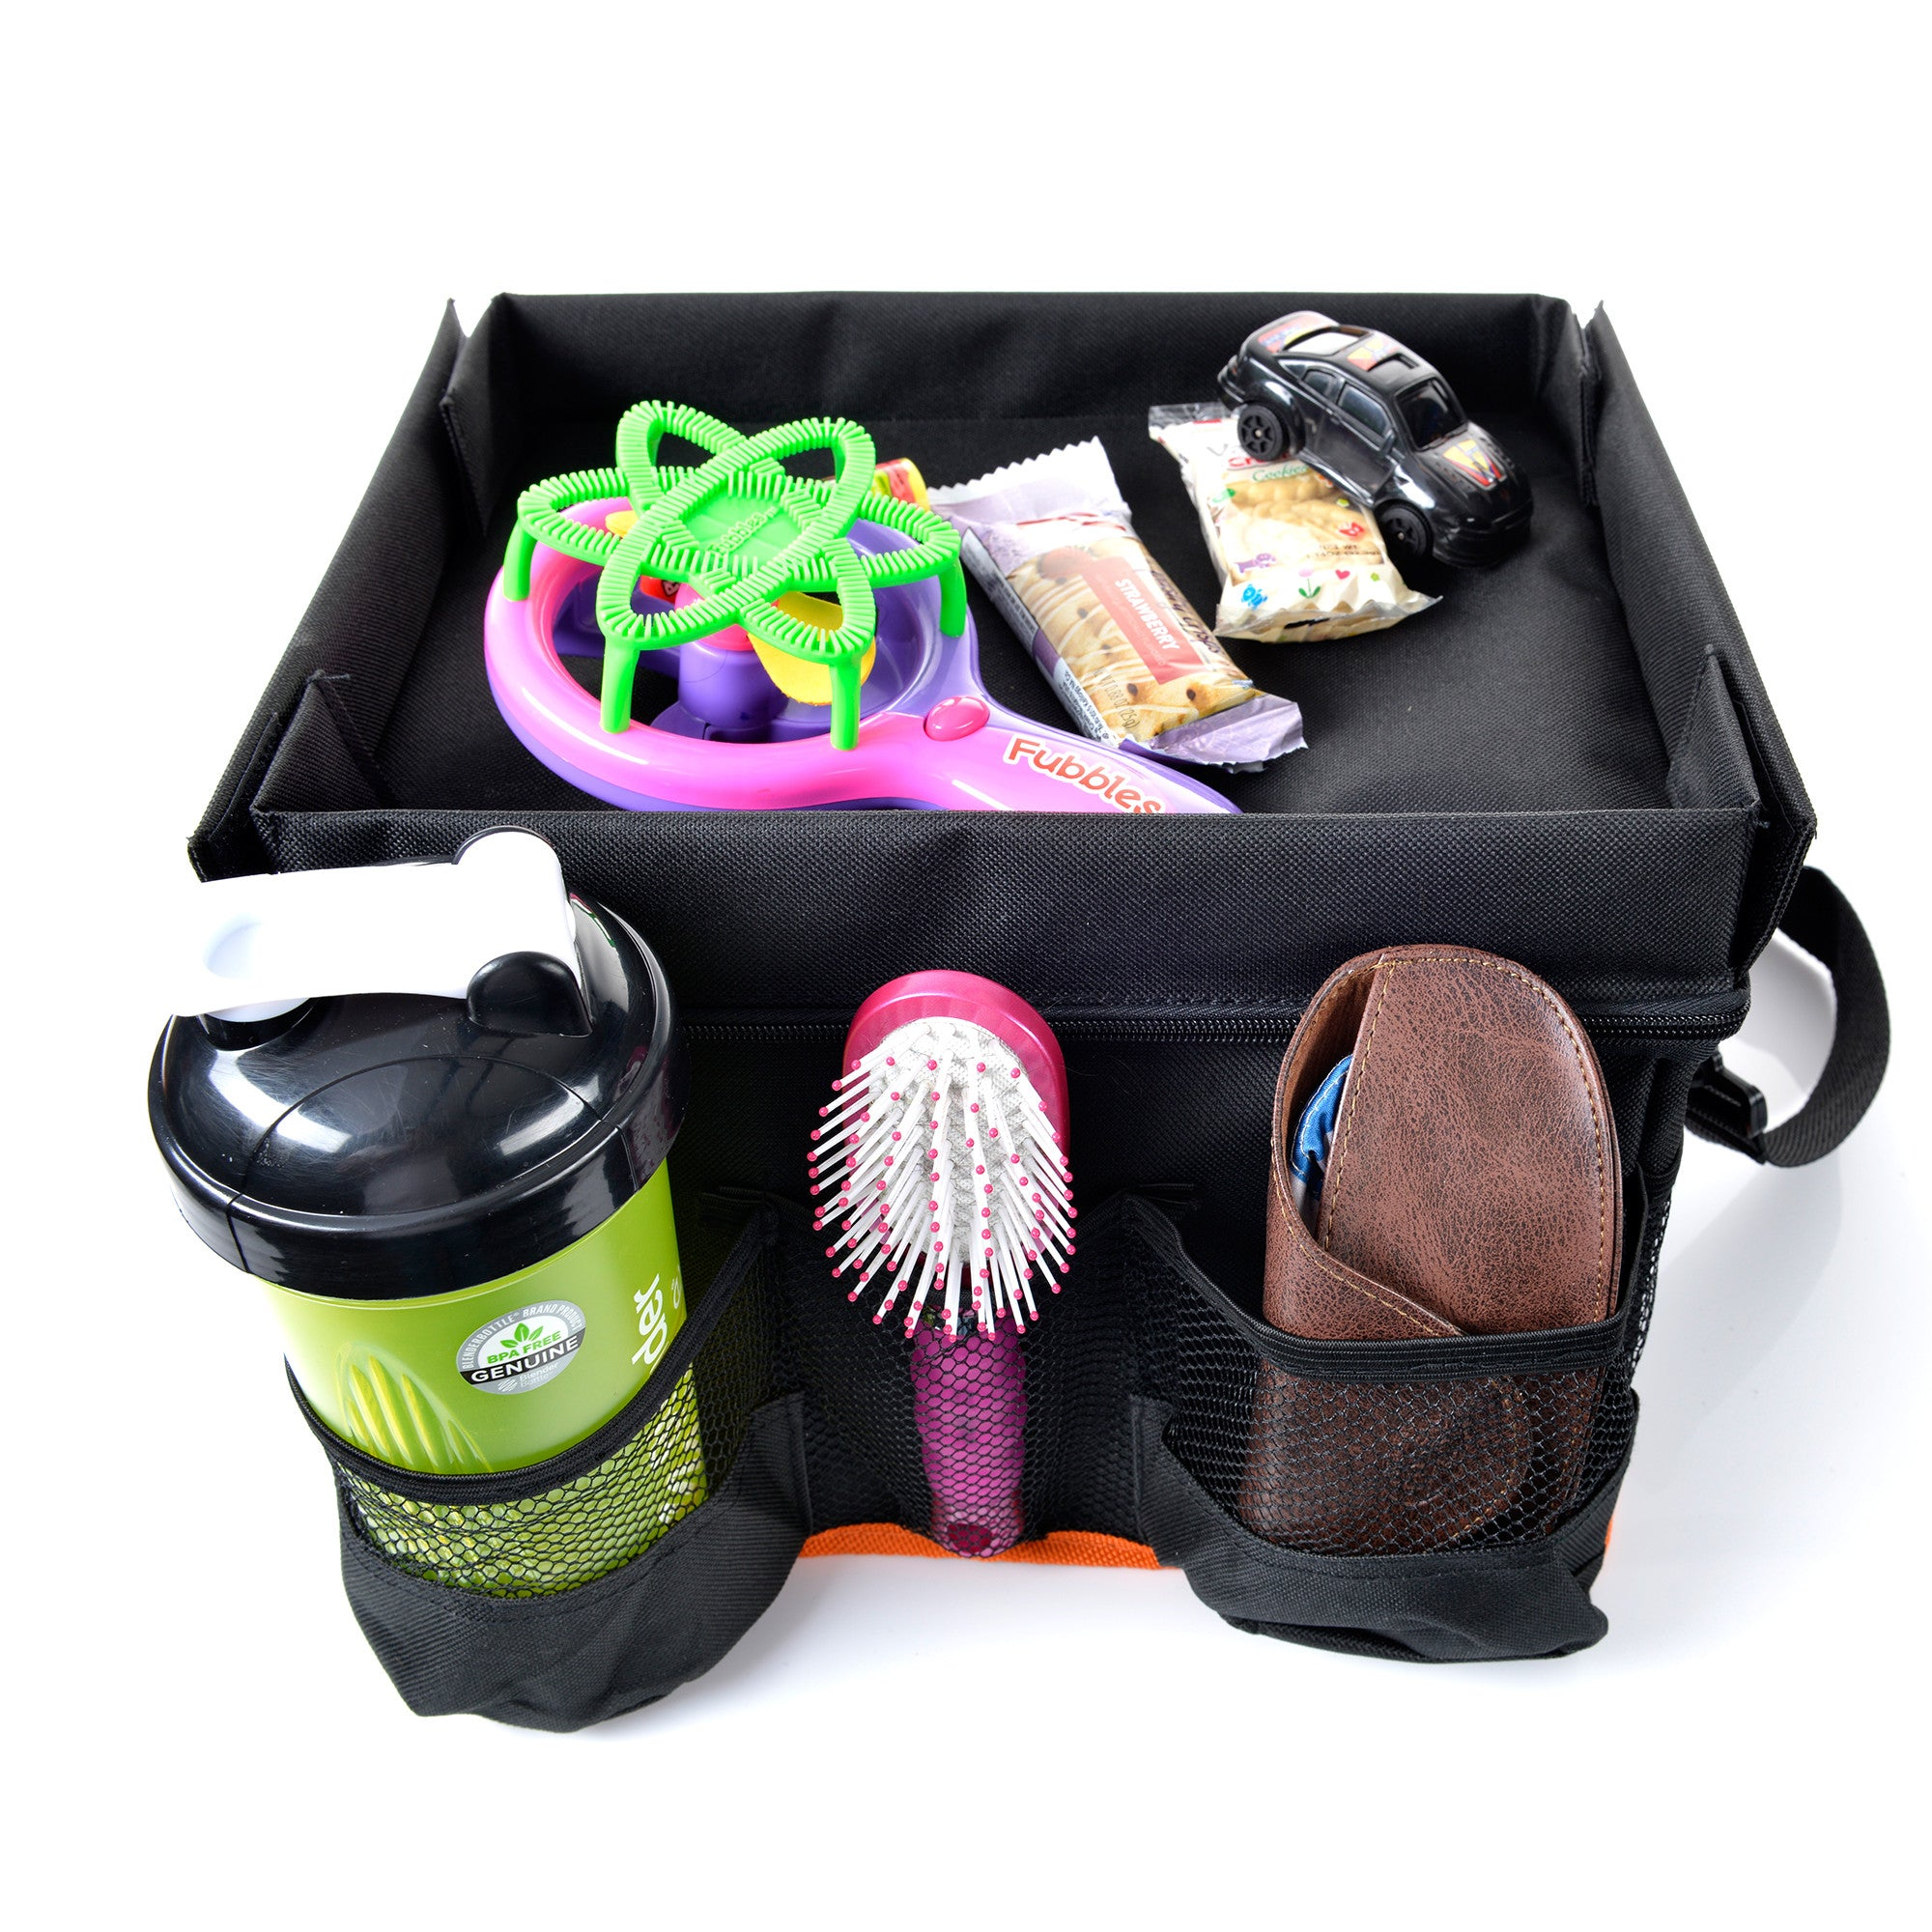 Organizer-Backseat Car Organizer for Kids with Play Tray and Cup Holders